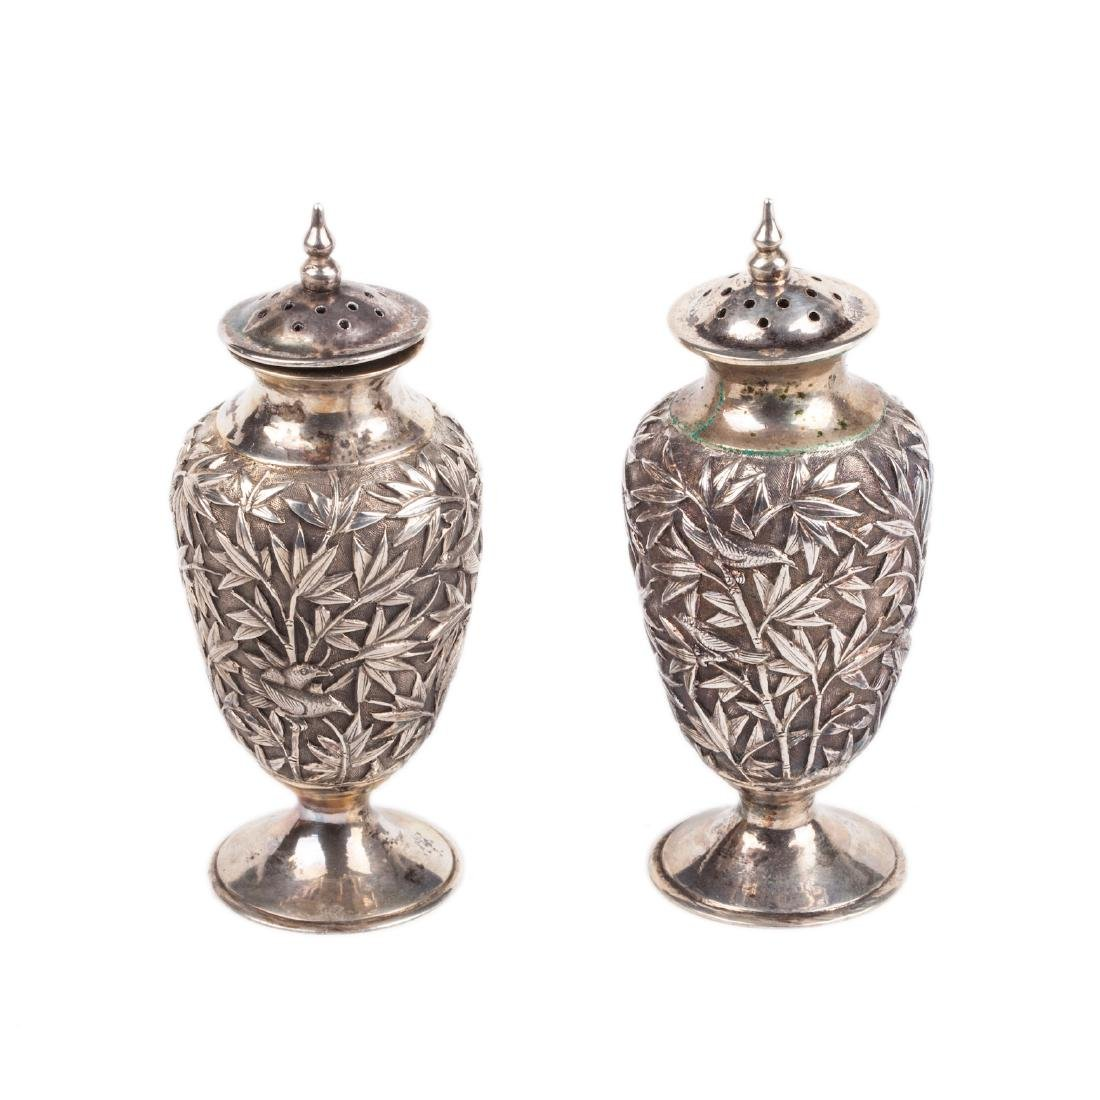 A pair of antique silver salt cellars with floral